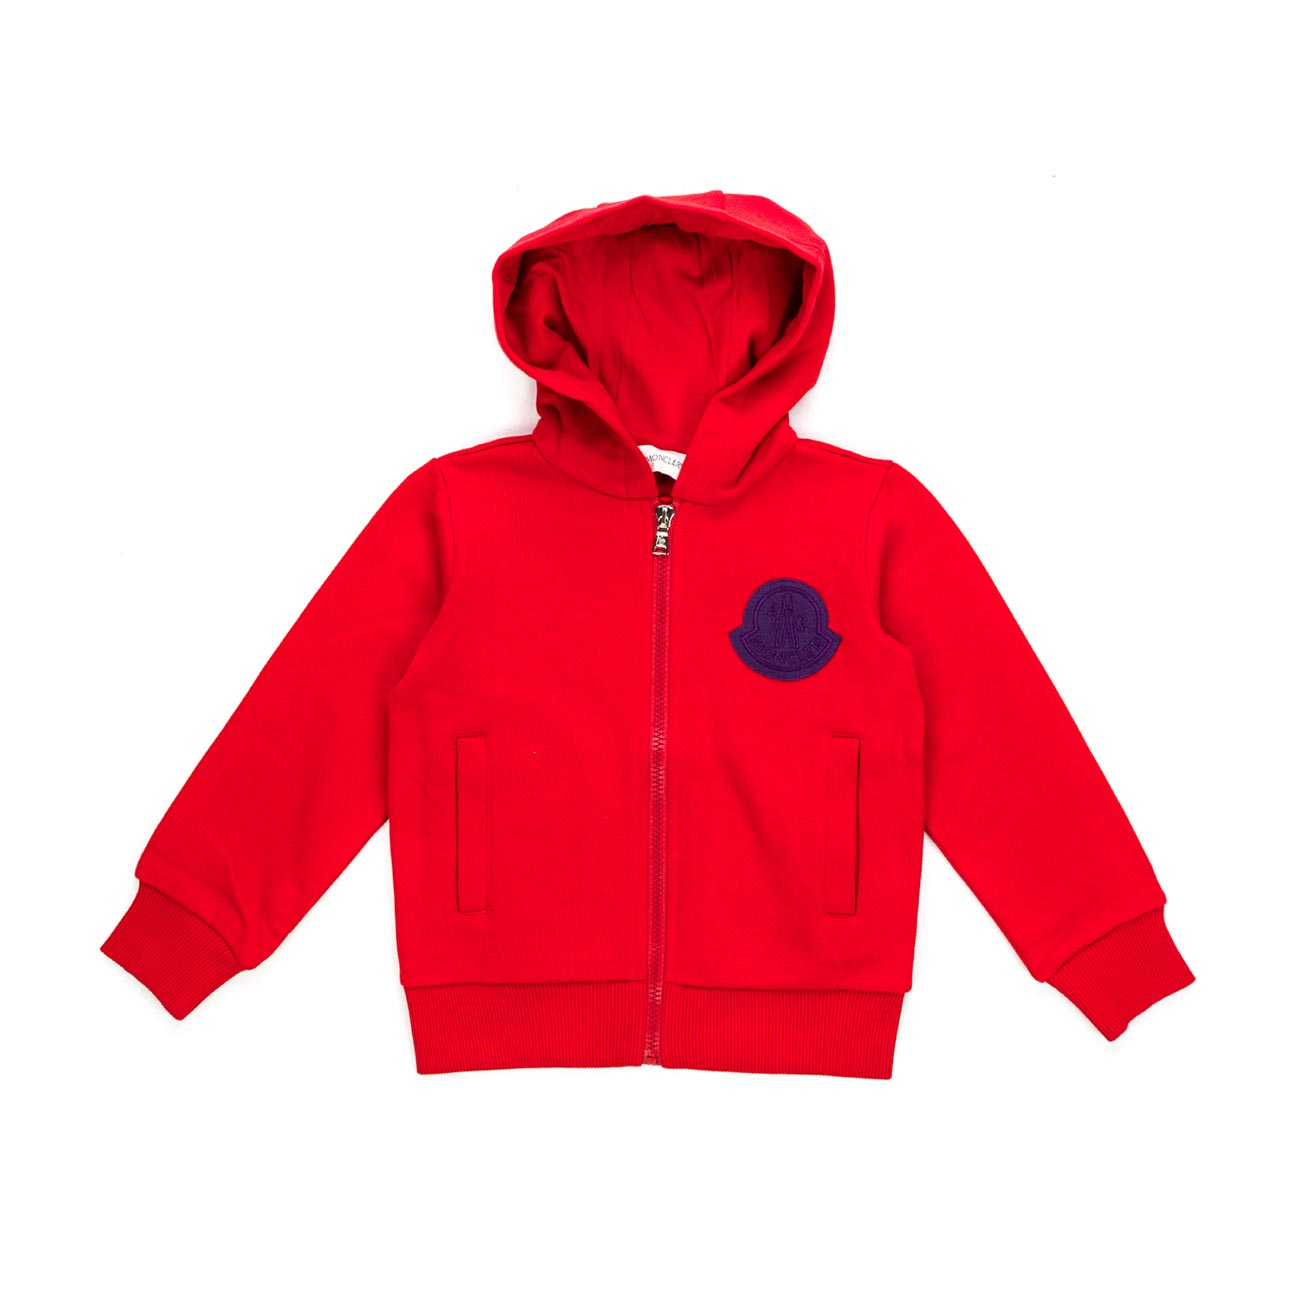 297072645 Moncler - Red Sweatshirt With Zip For Boys - annameglio.com shop online